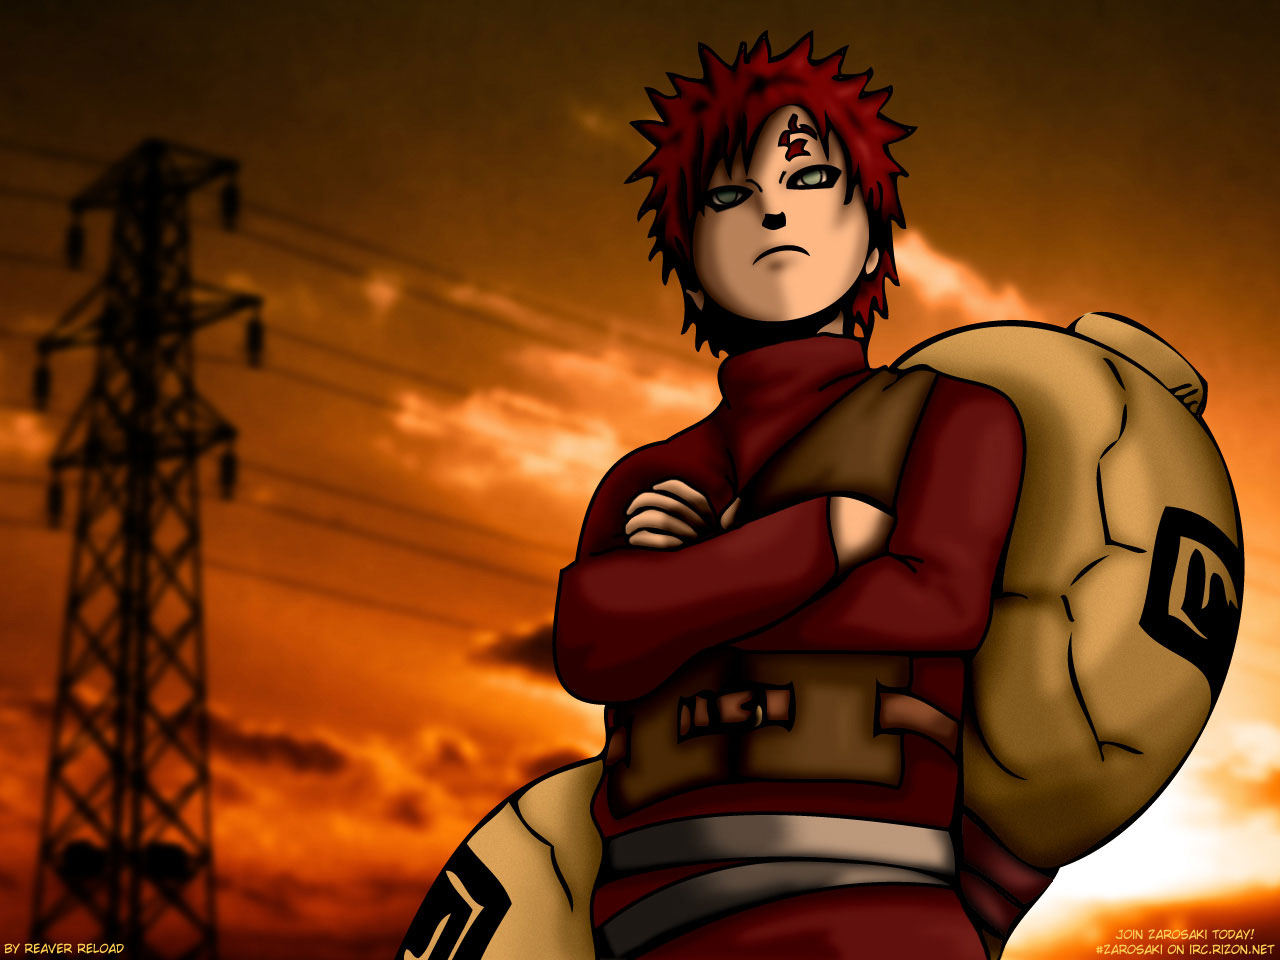 Anime Wallpaper Gaara HD Naruto Movie Anime Wallpapers 1280x960